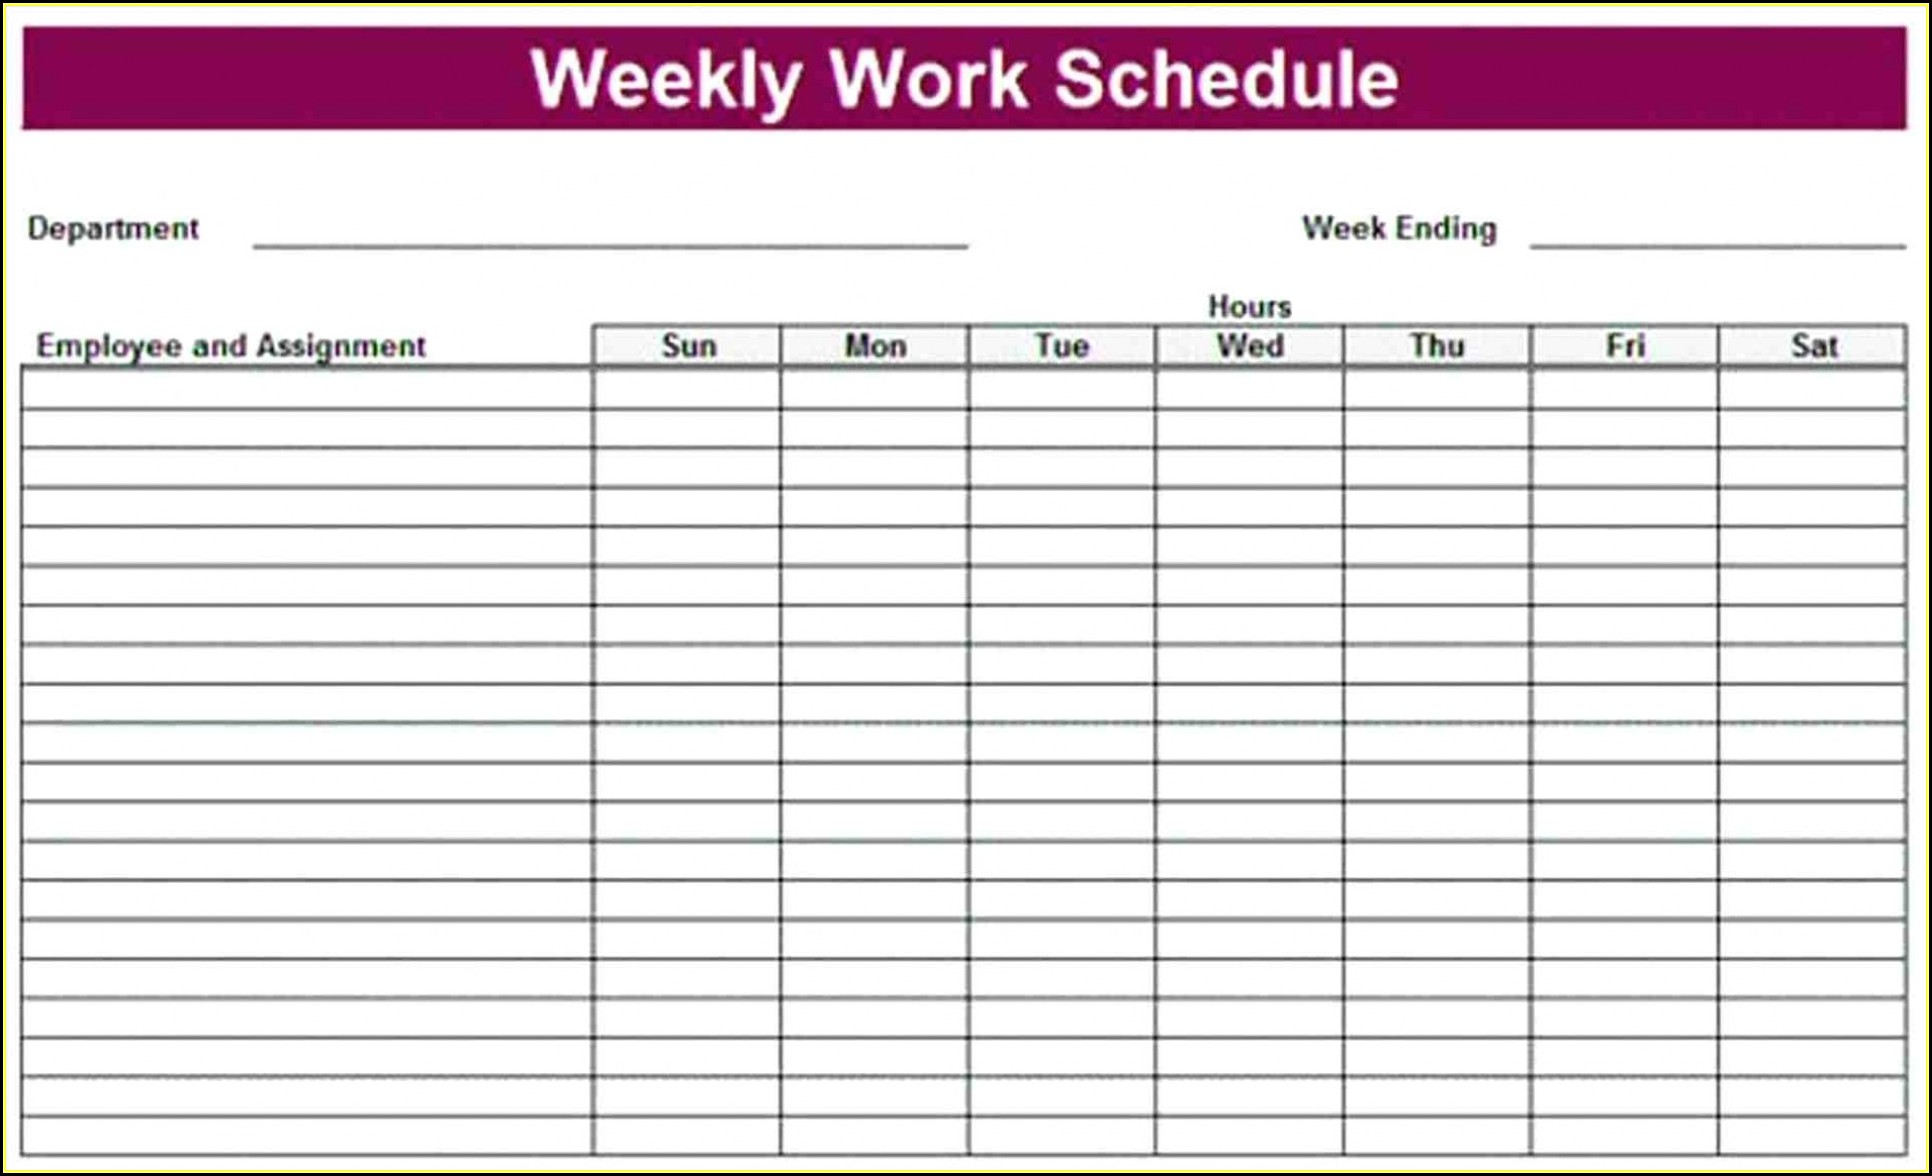 Monthly Rotation Schedule Template